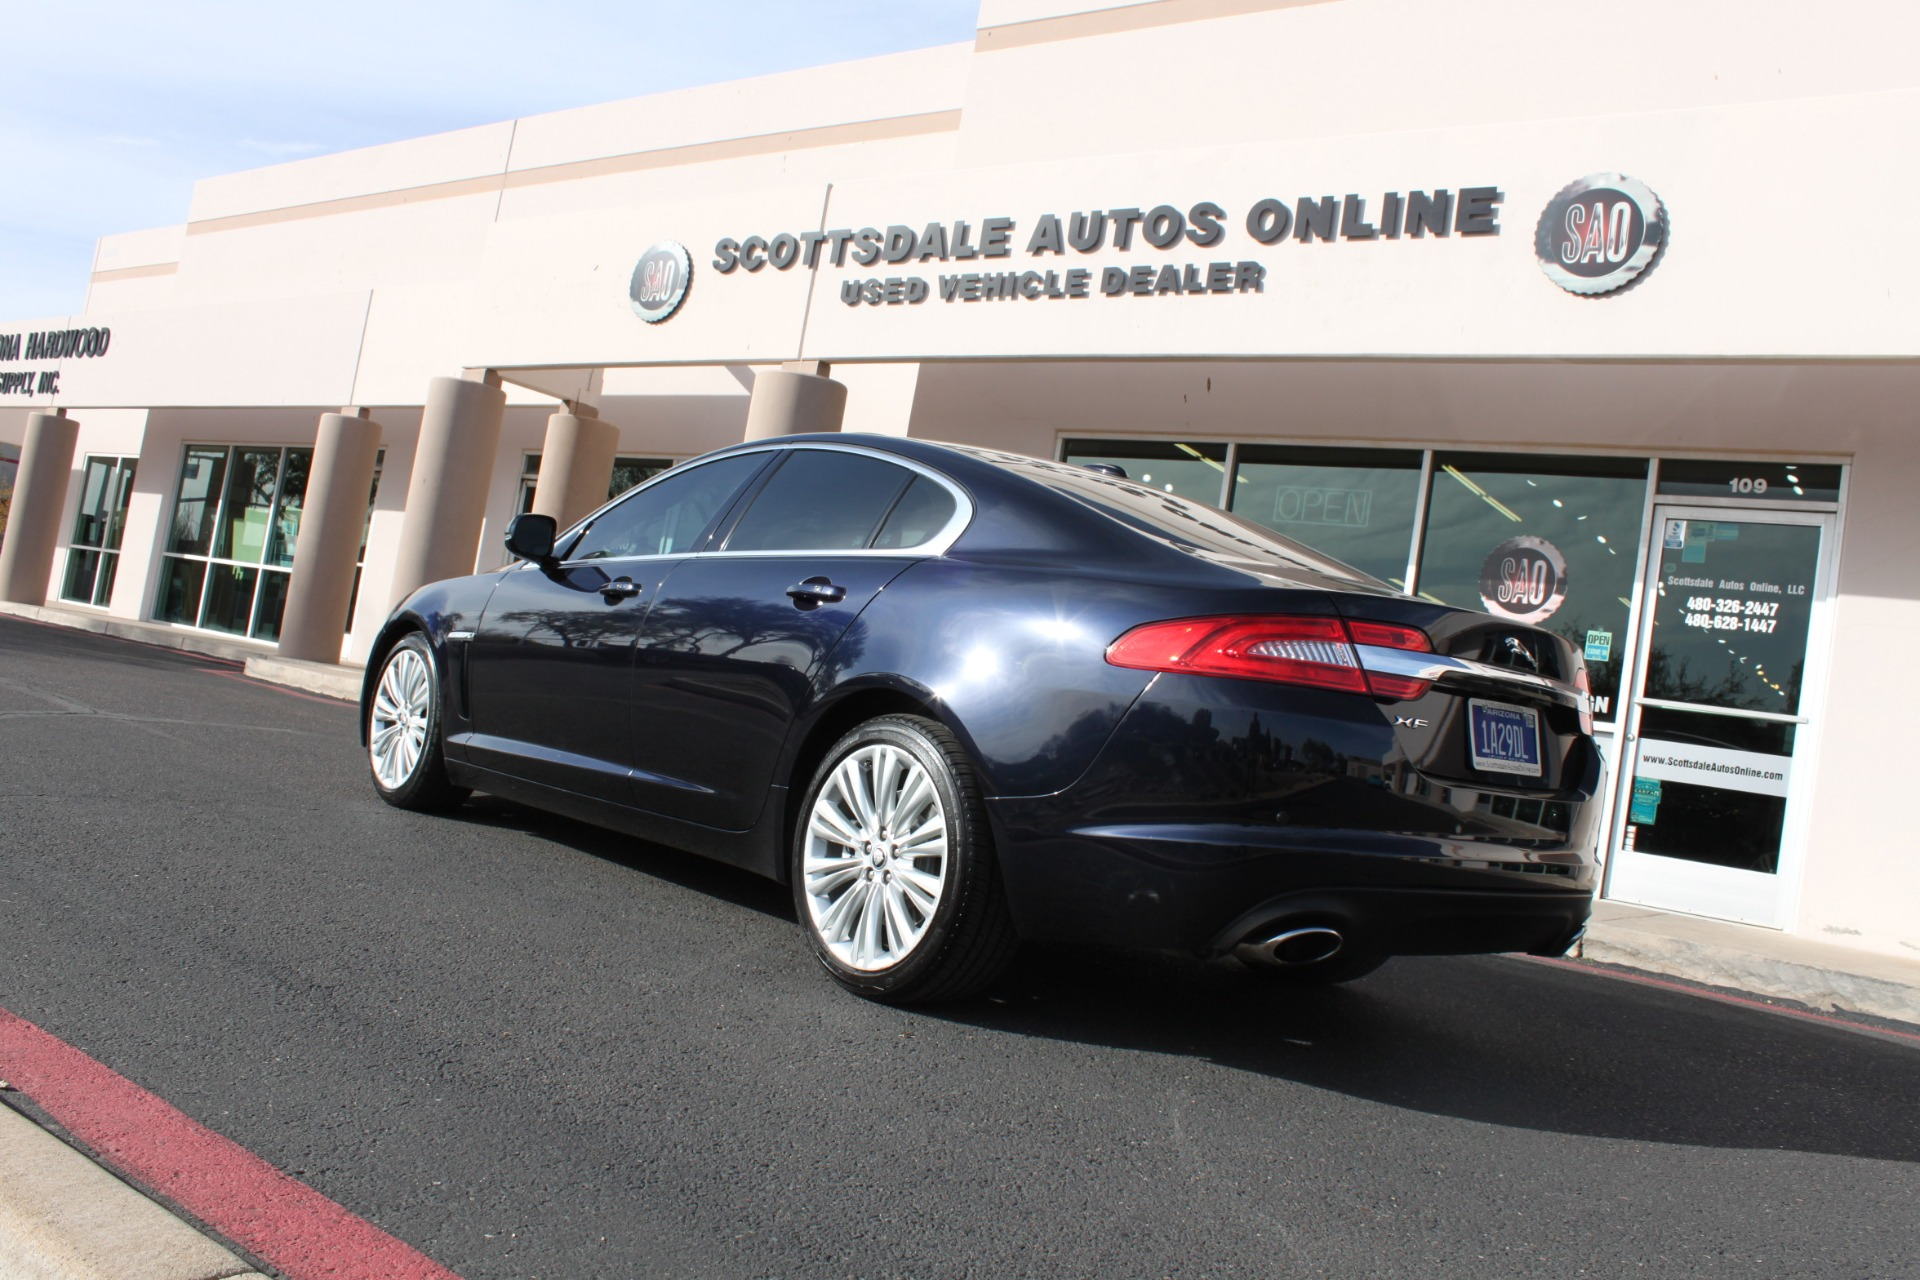 Used-2012-Jaguar-XF-Portfolio-Chevelle